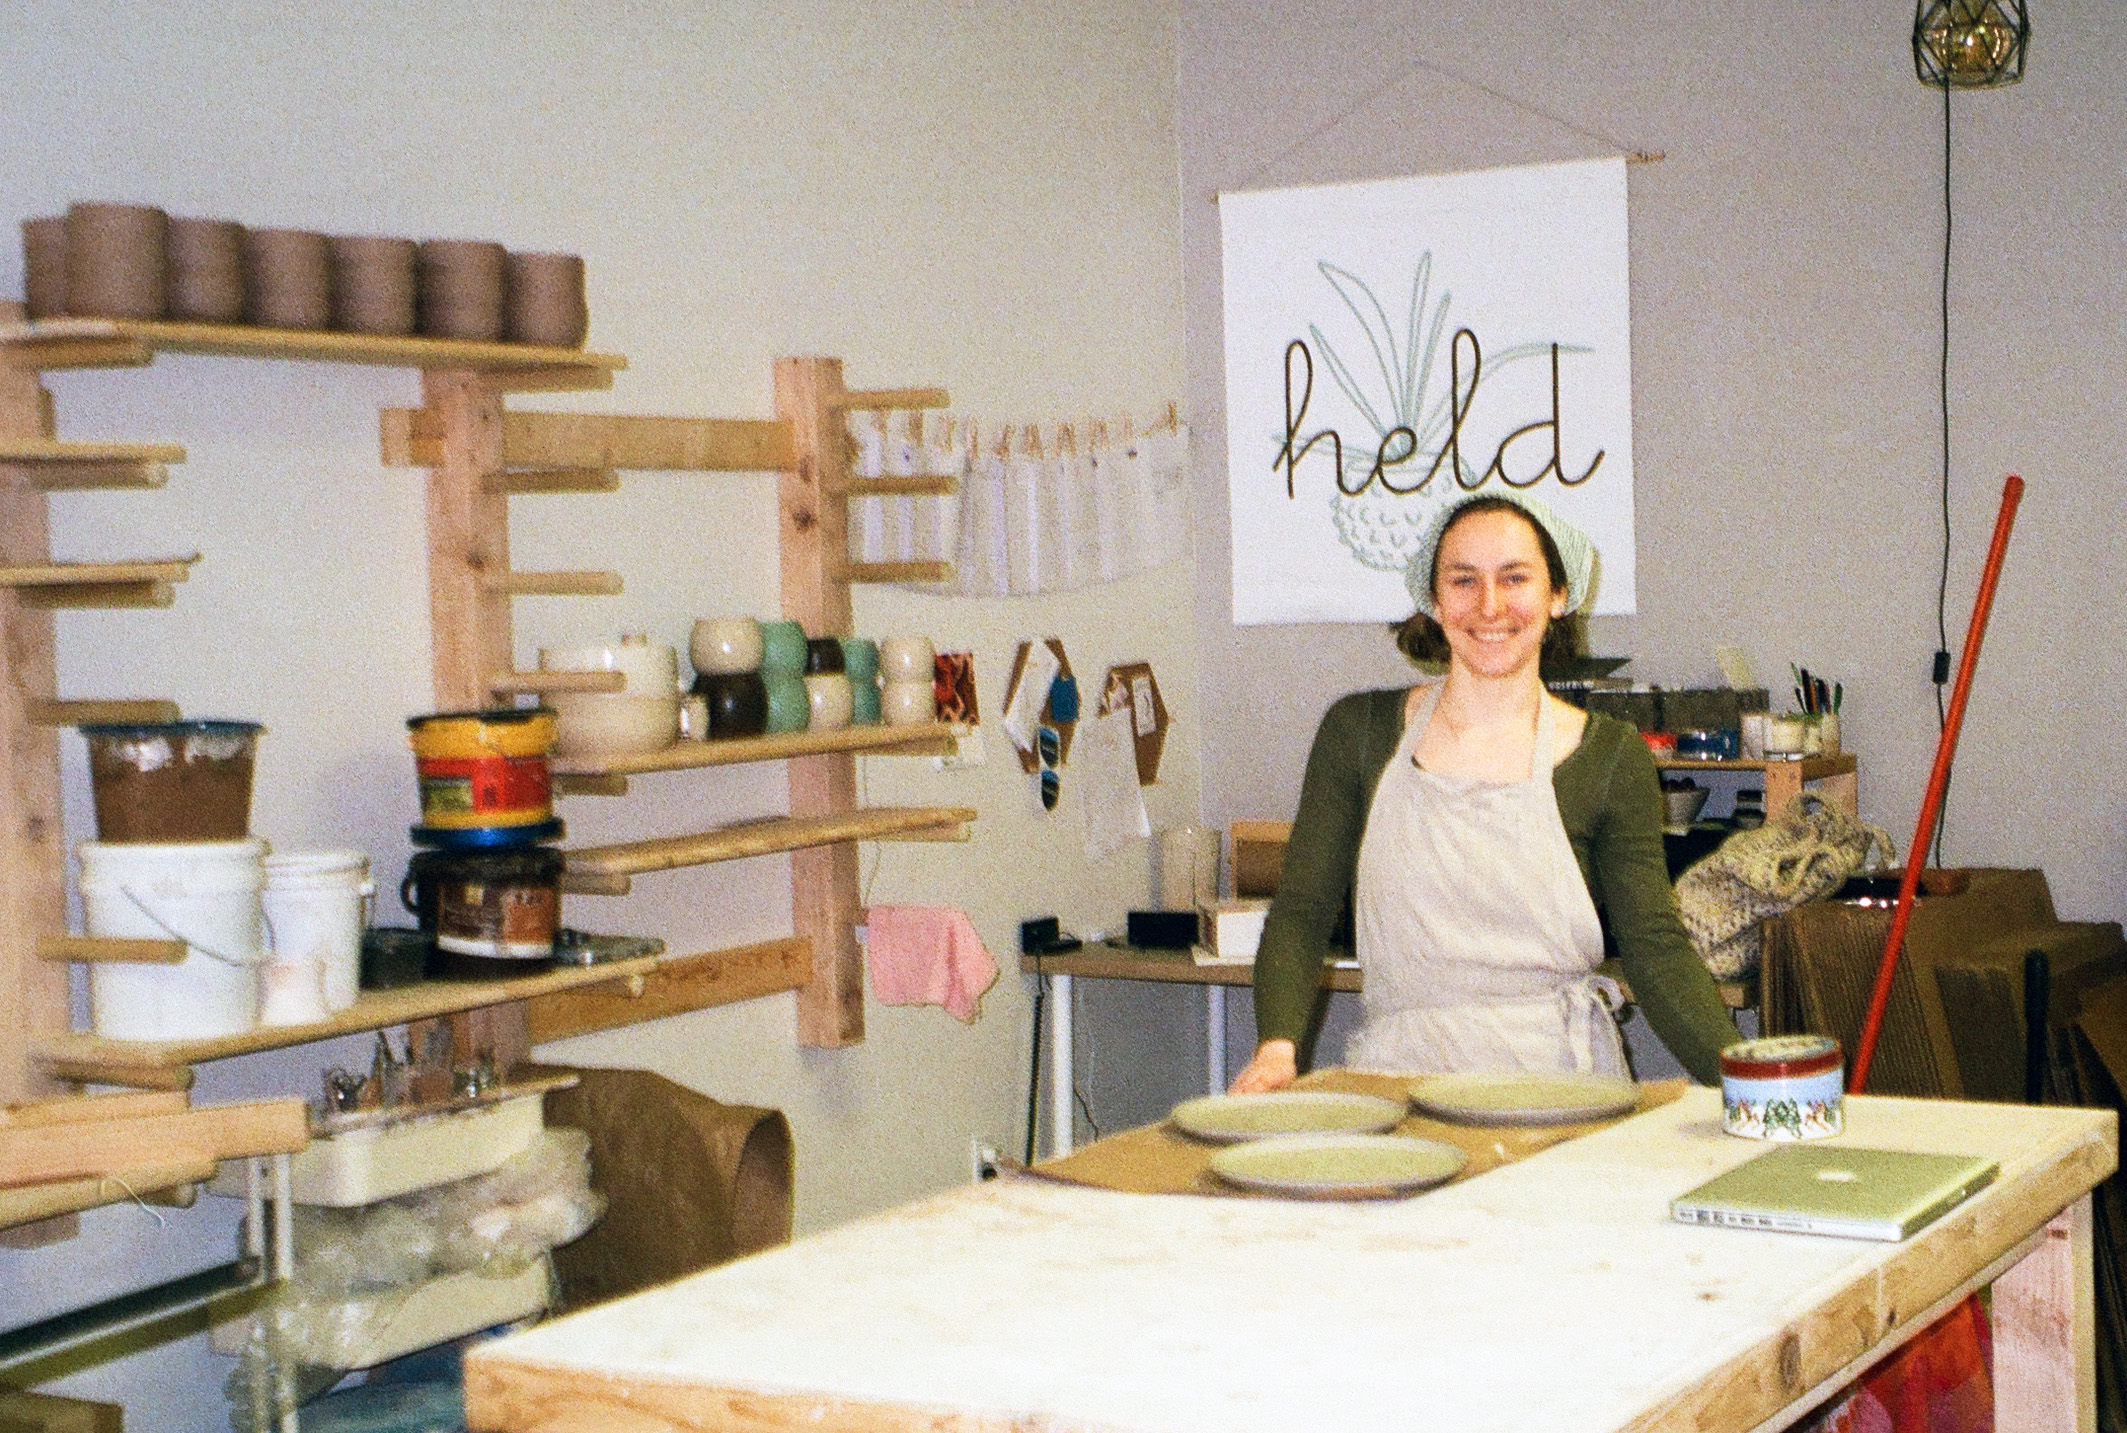 Carrie Hause is the owner and artisan behind Held Ceramics.Held is a collection of handmade pottery for you and your plants. Through surface design and shape, Held creates a tactile and visual experience. -